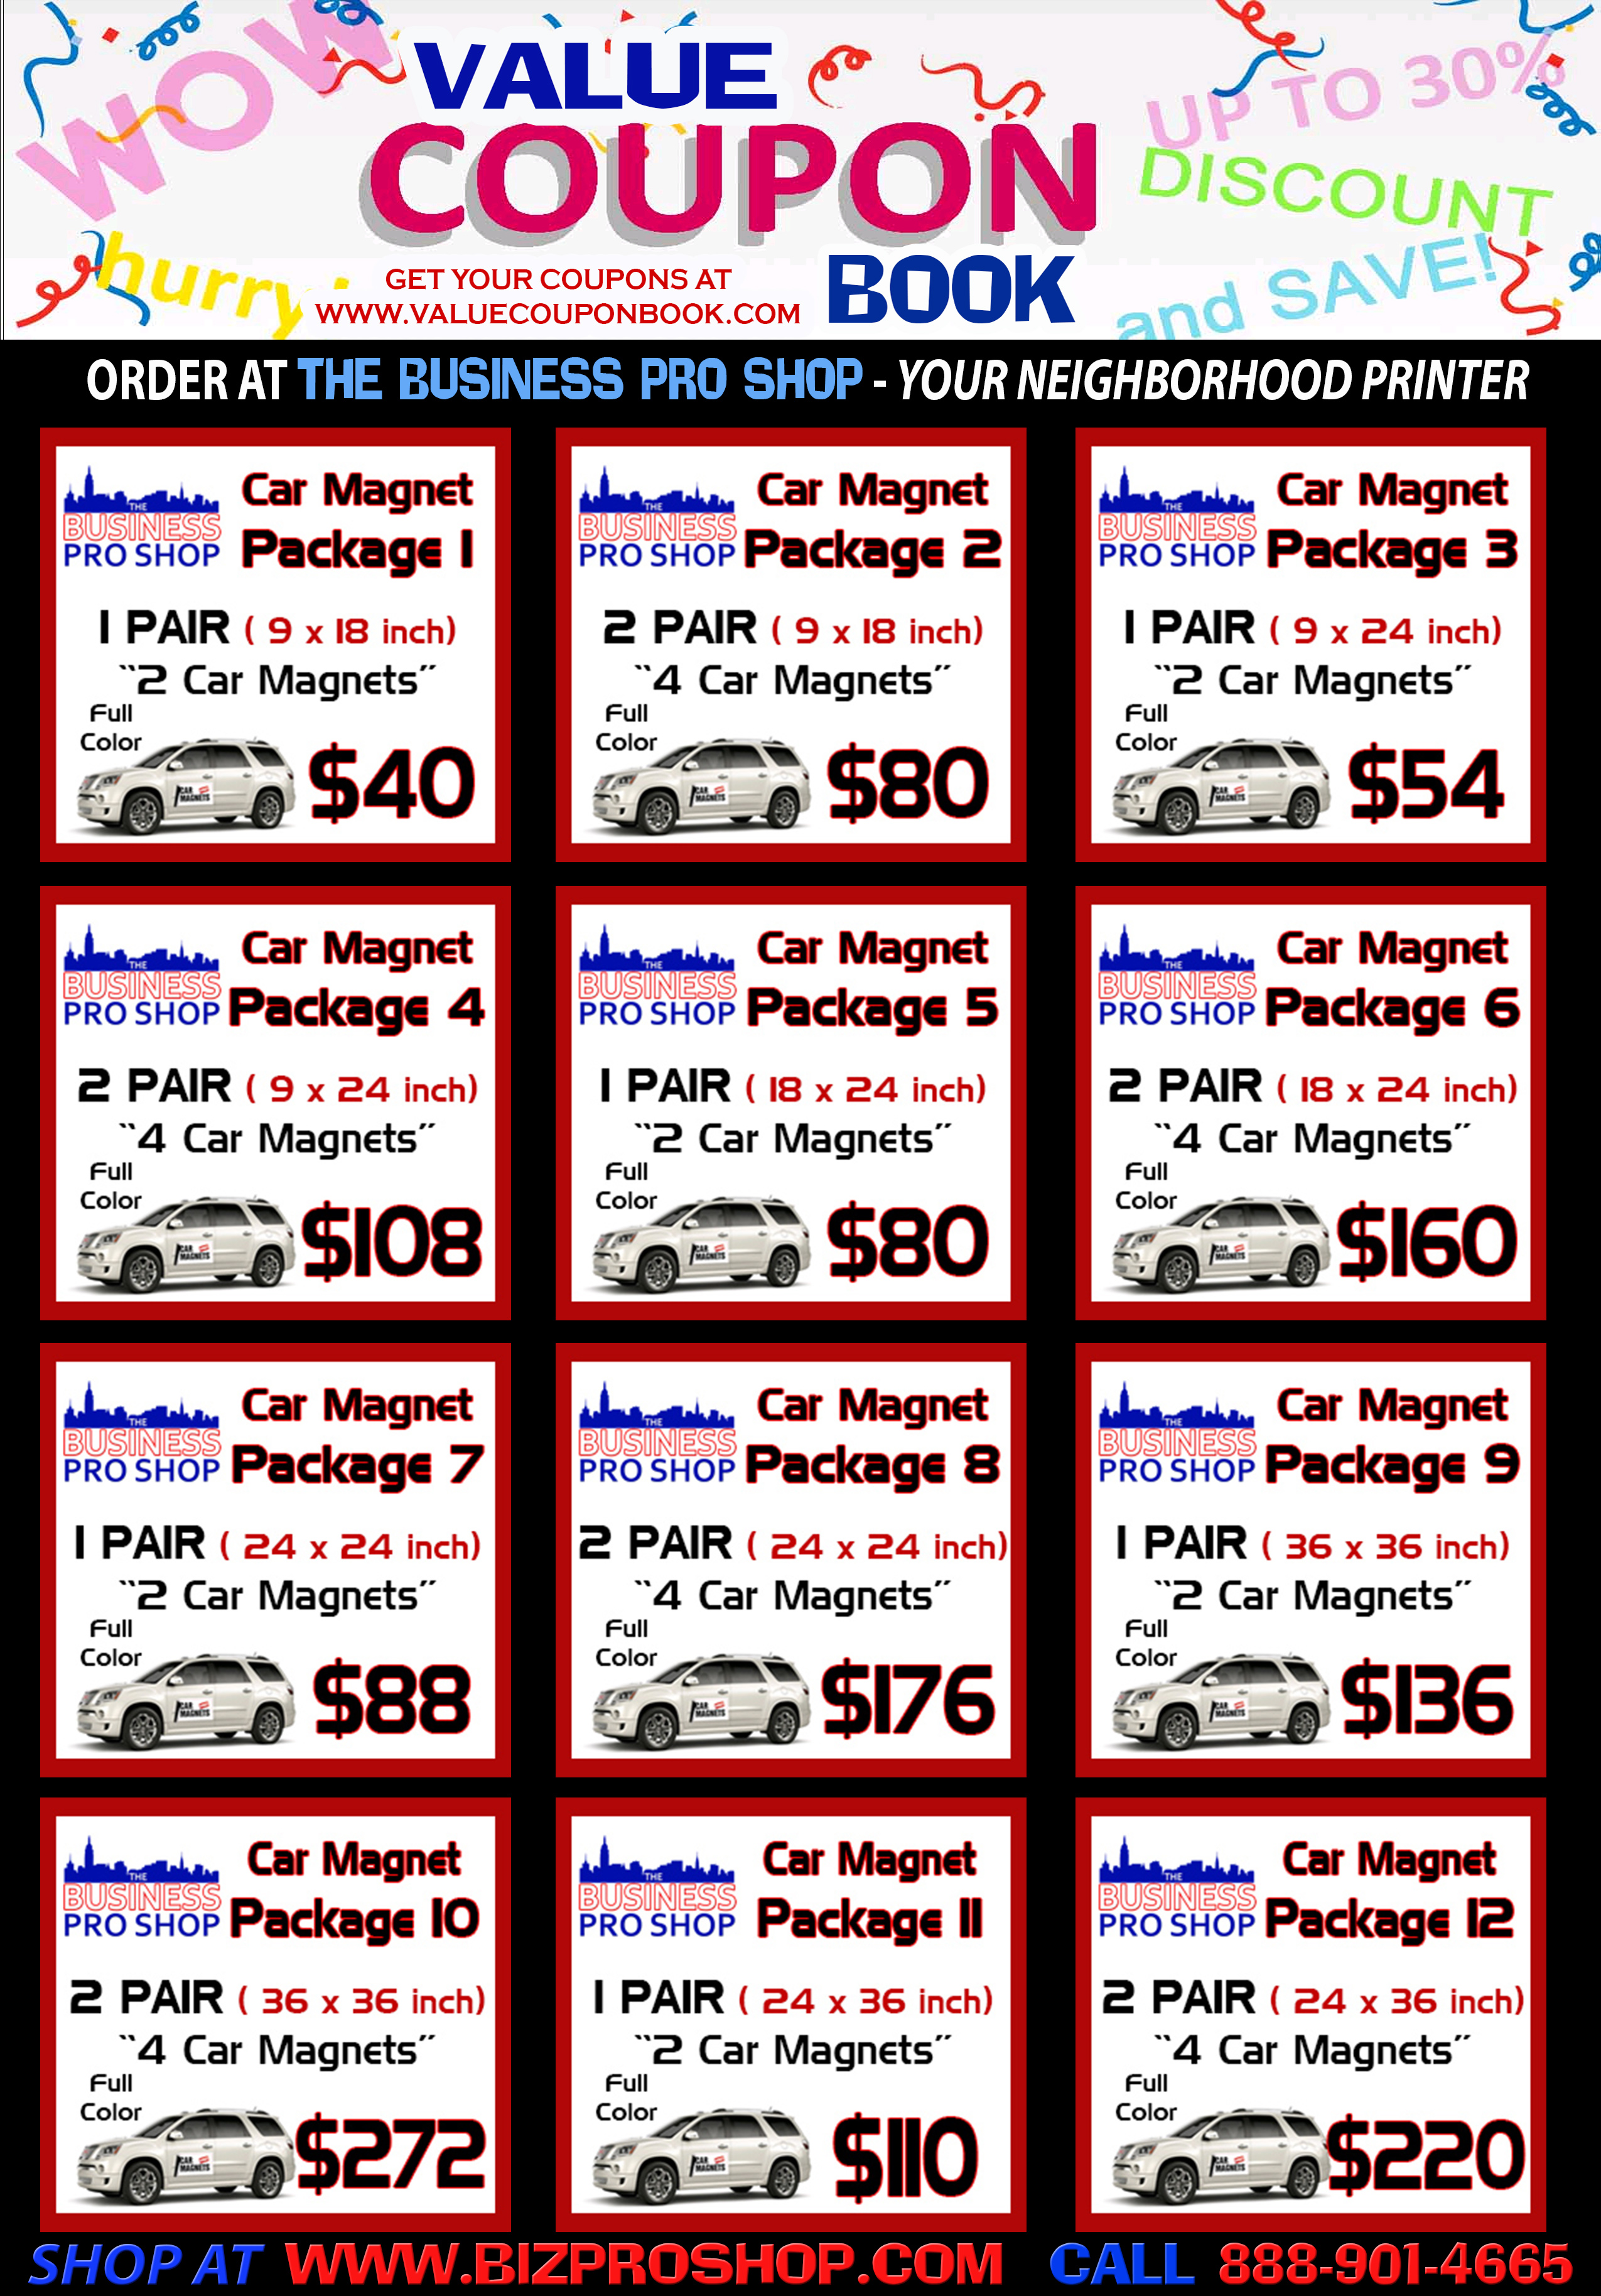 Freee Coupons at Value Coupon Book | No Sign-Up Required